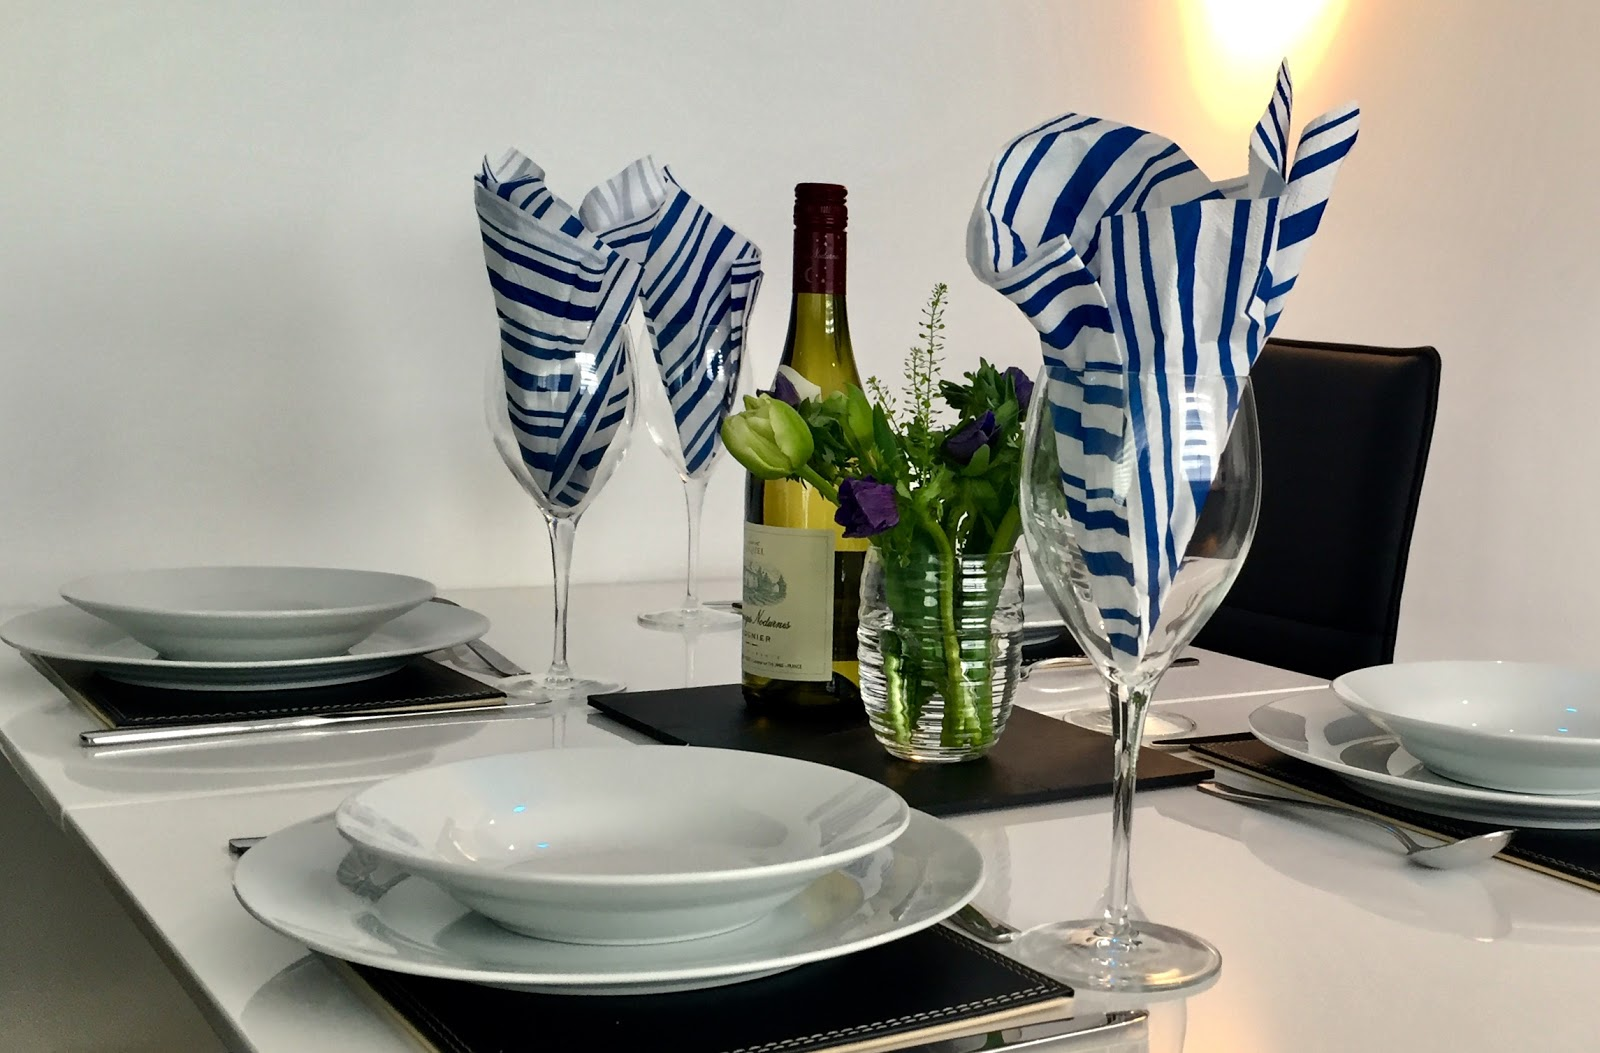 All crockery, cutlery, glassware included, ready for entertaining or unwinding after work.